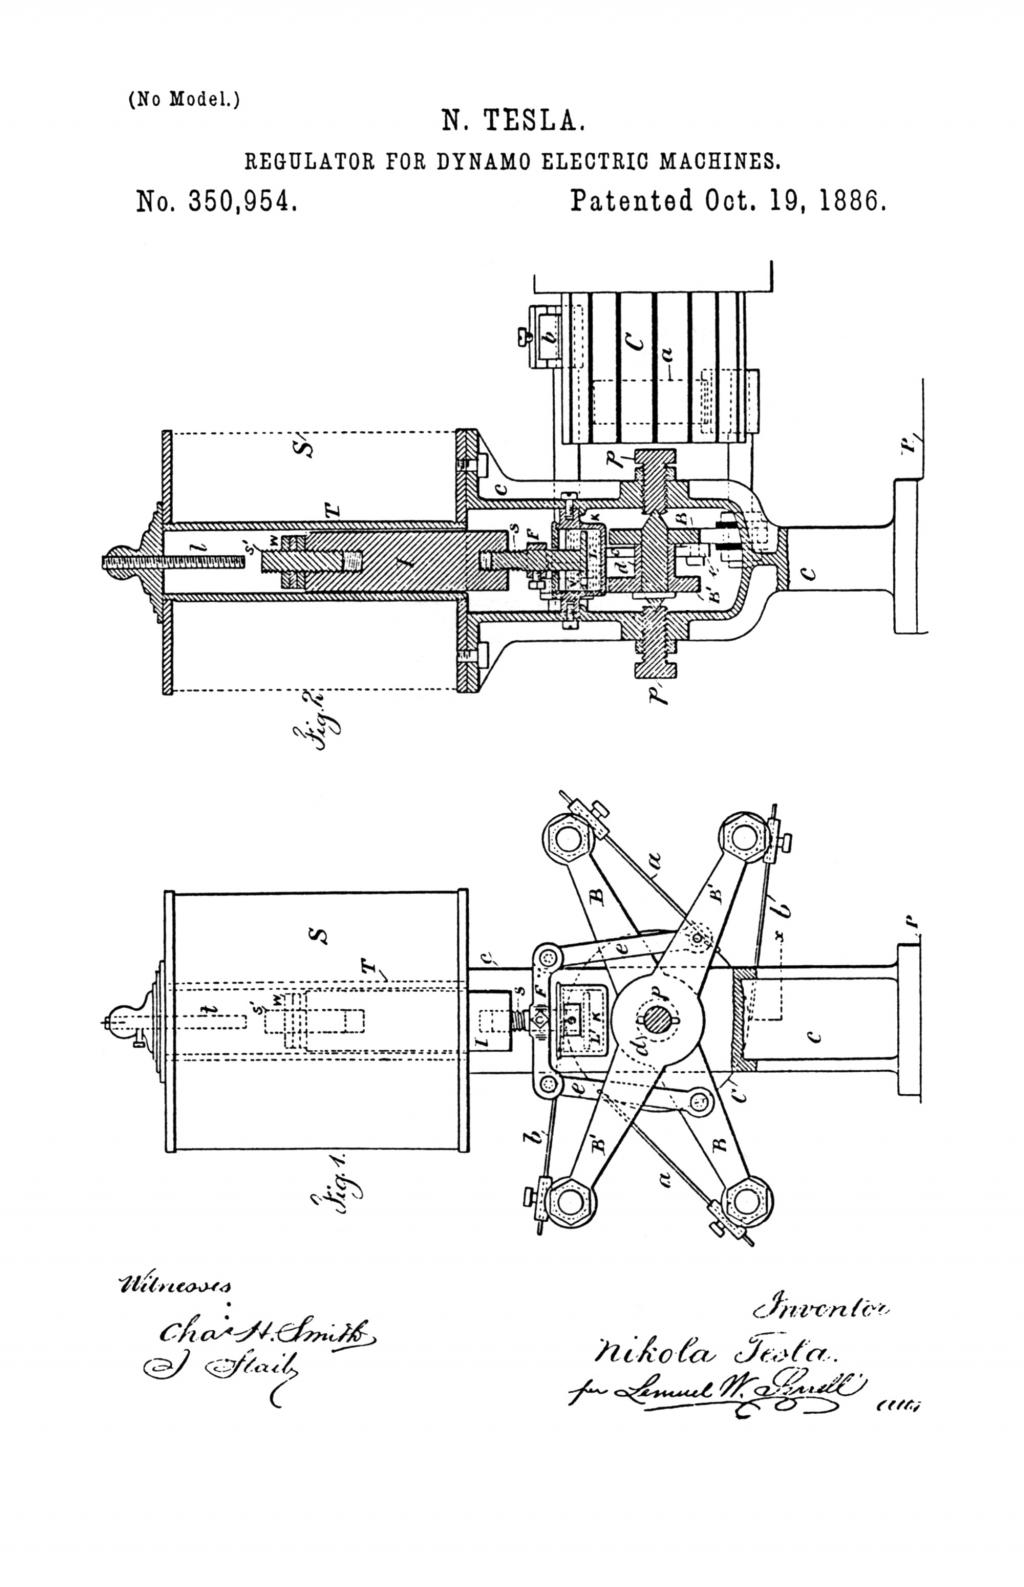 Nikola Tesla U.S. Patent 350,954 - Regulator for Dynamo-Electric Machines - Image 1